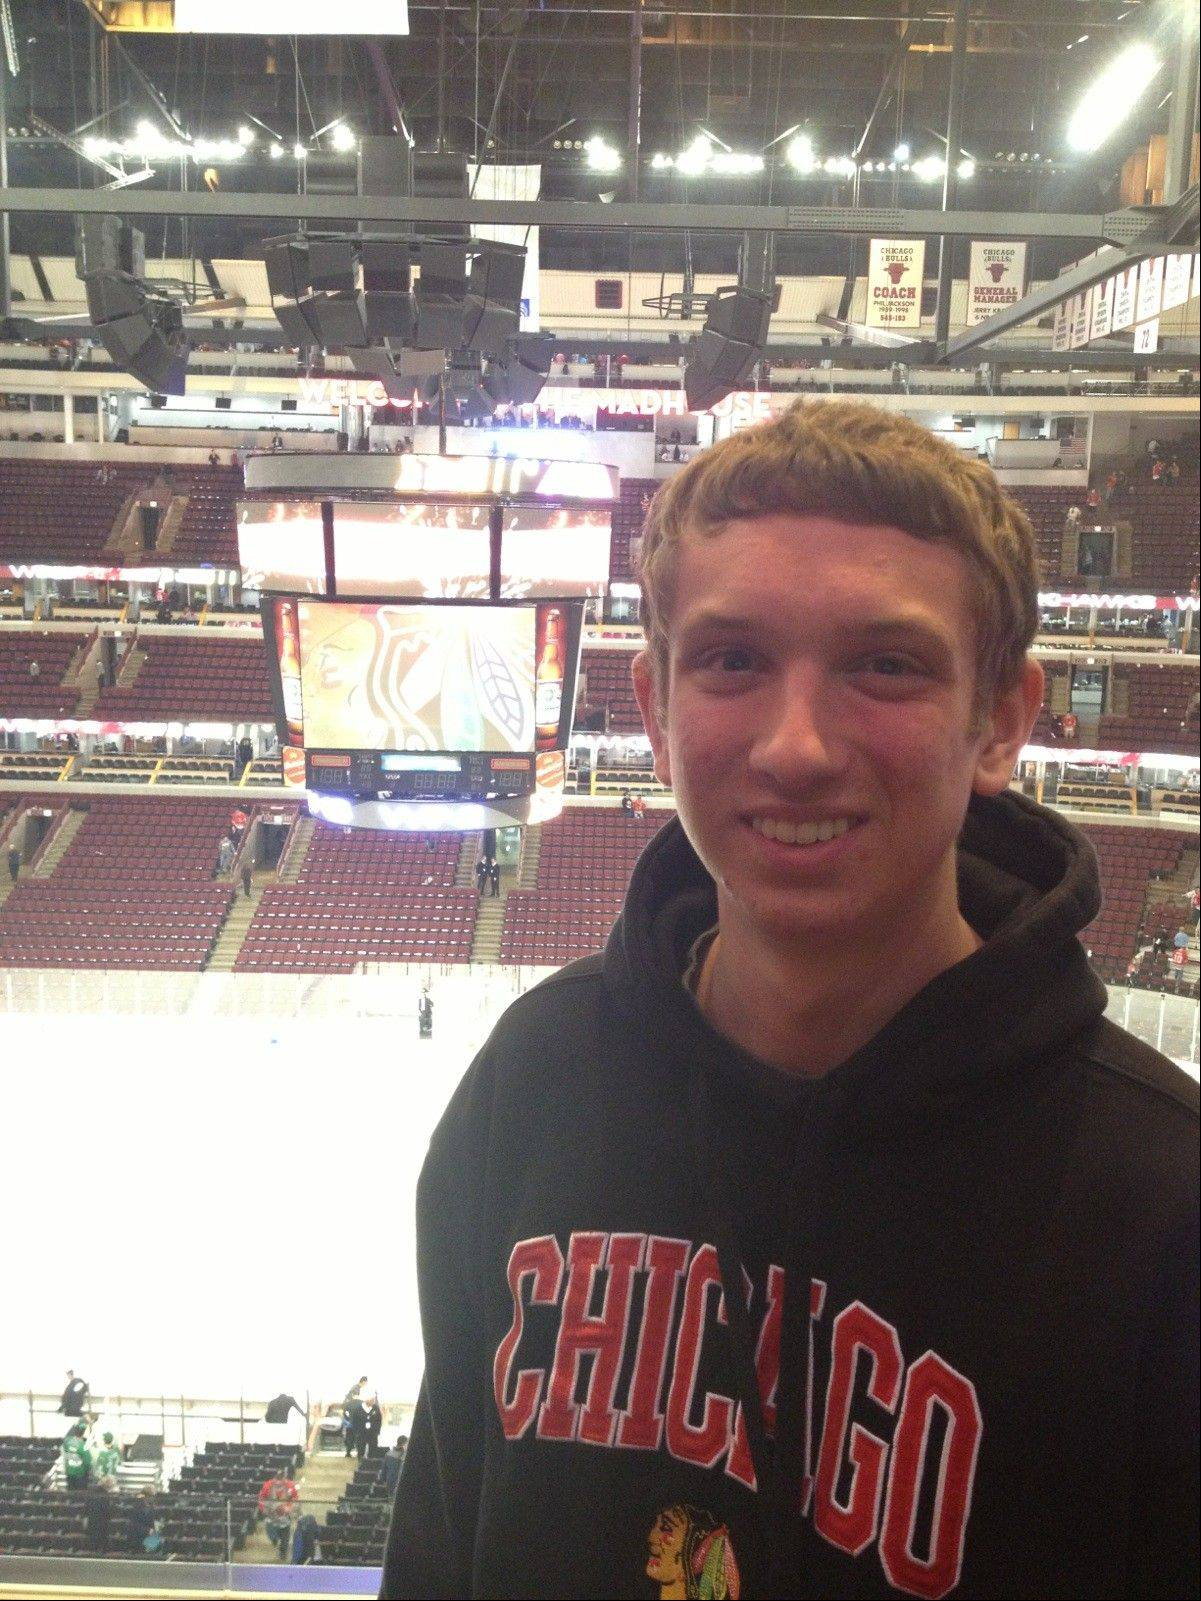 Jeremy Wittenberg of Carol Stream has spent the last 5 birthdays at A Hawks game with friends. Some of which included Limo rides and skyboxes.